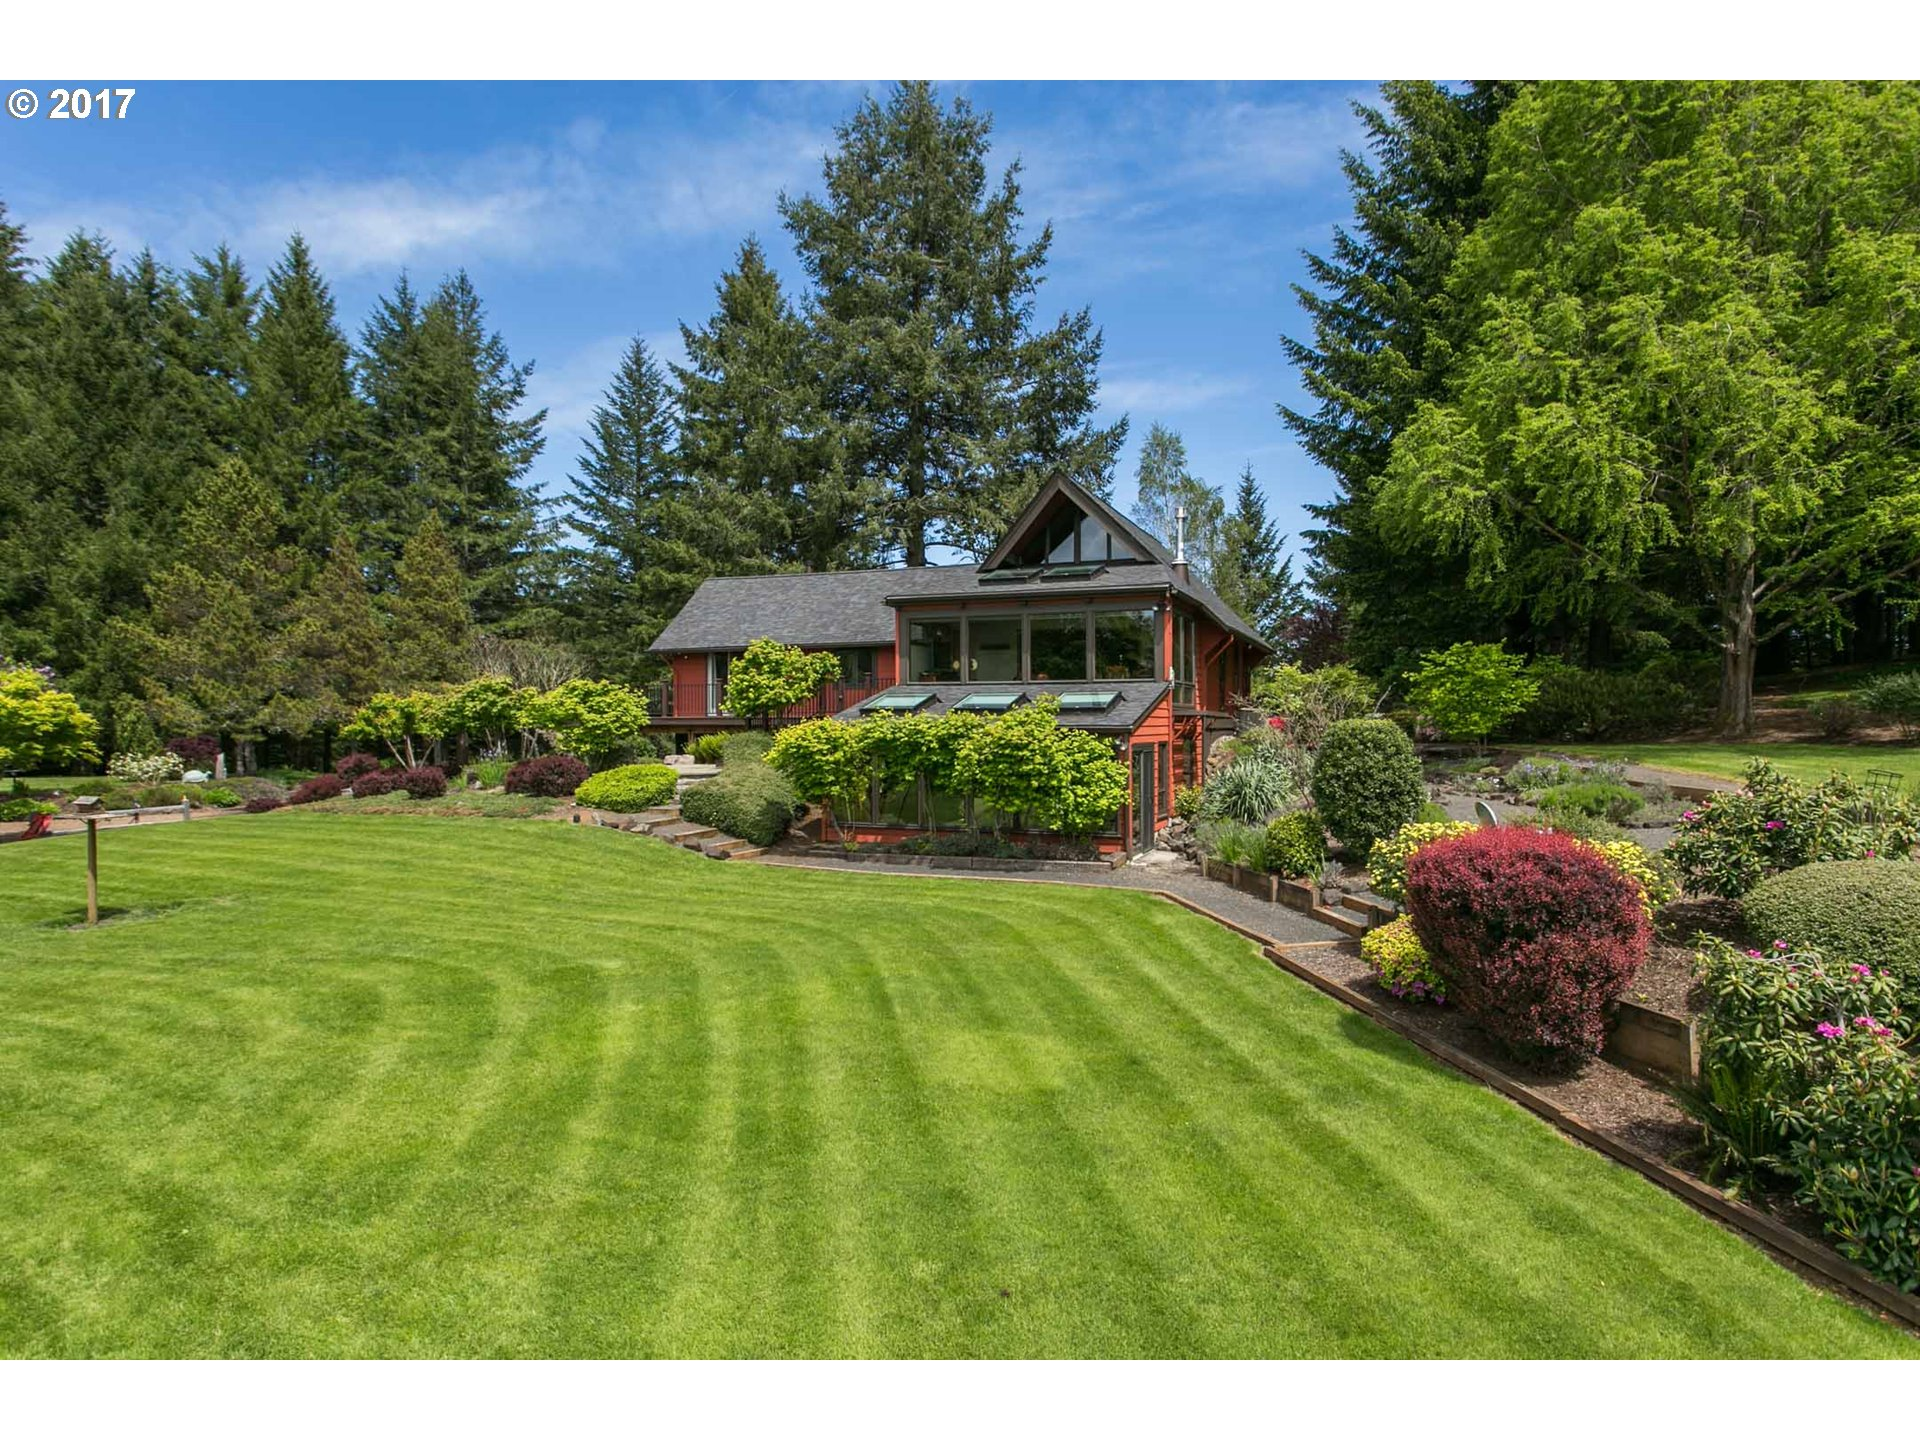 15505 NW ORCHARD VIEW RD, McMinnville, OR 97128